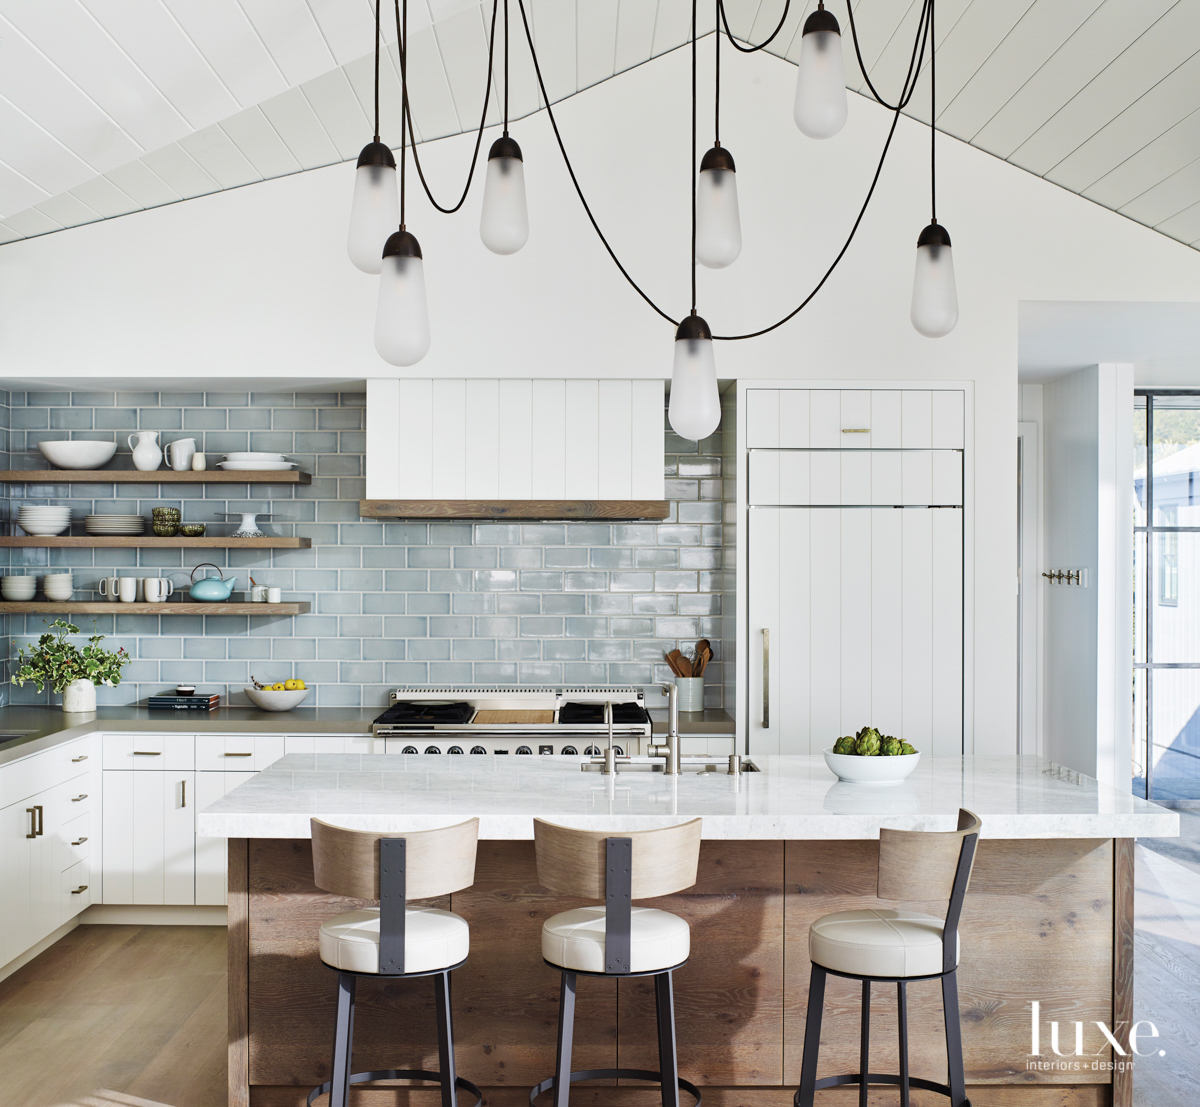 A kitchen is accented with...